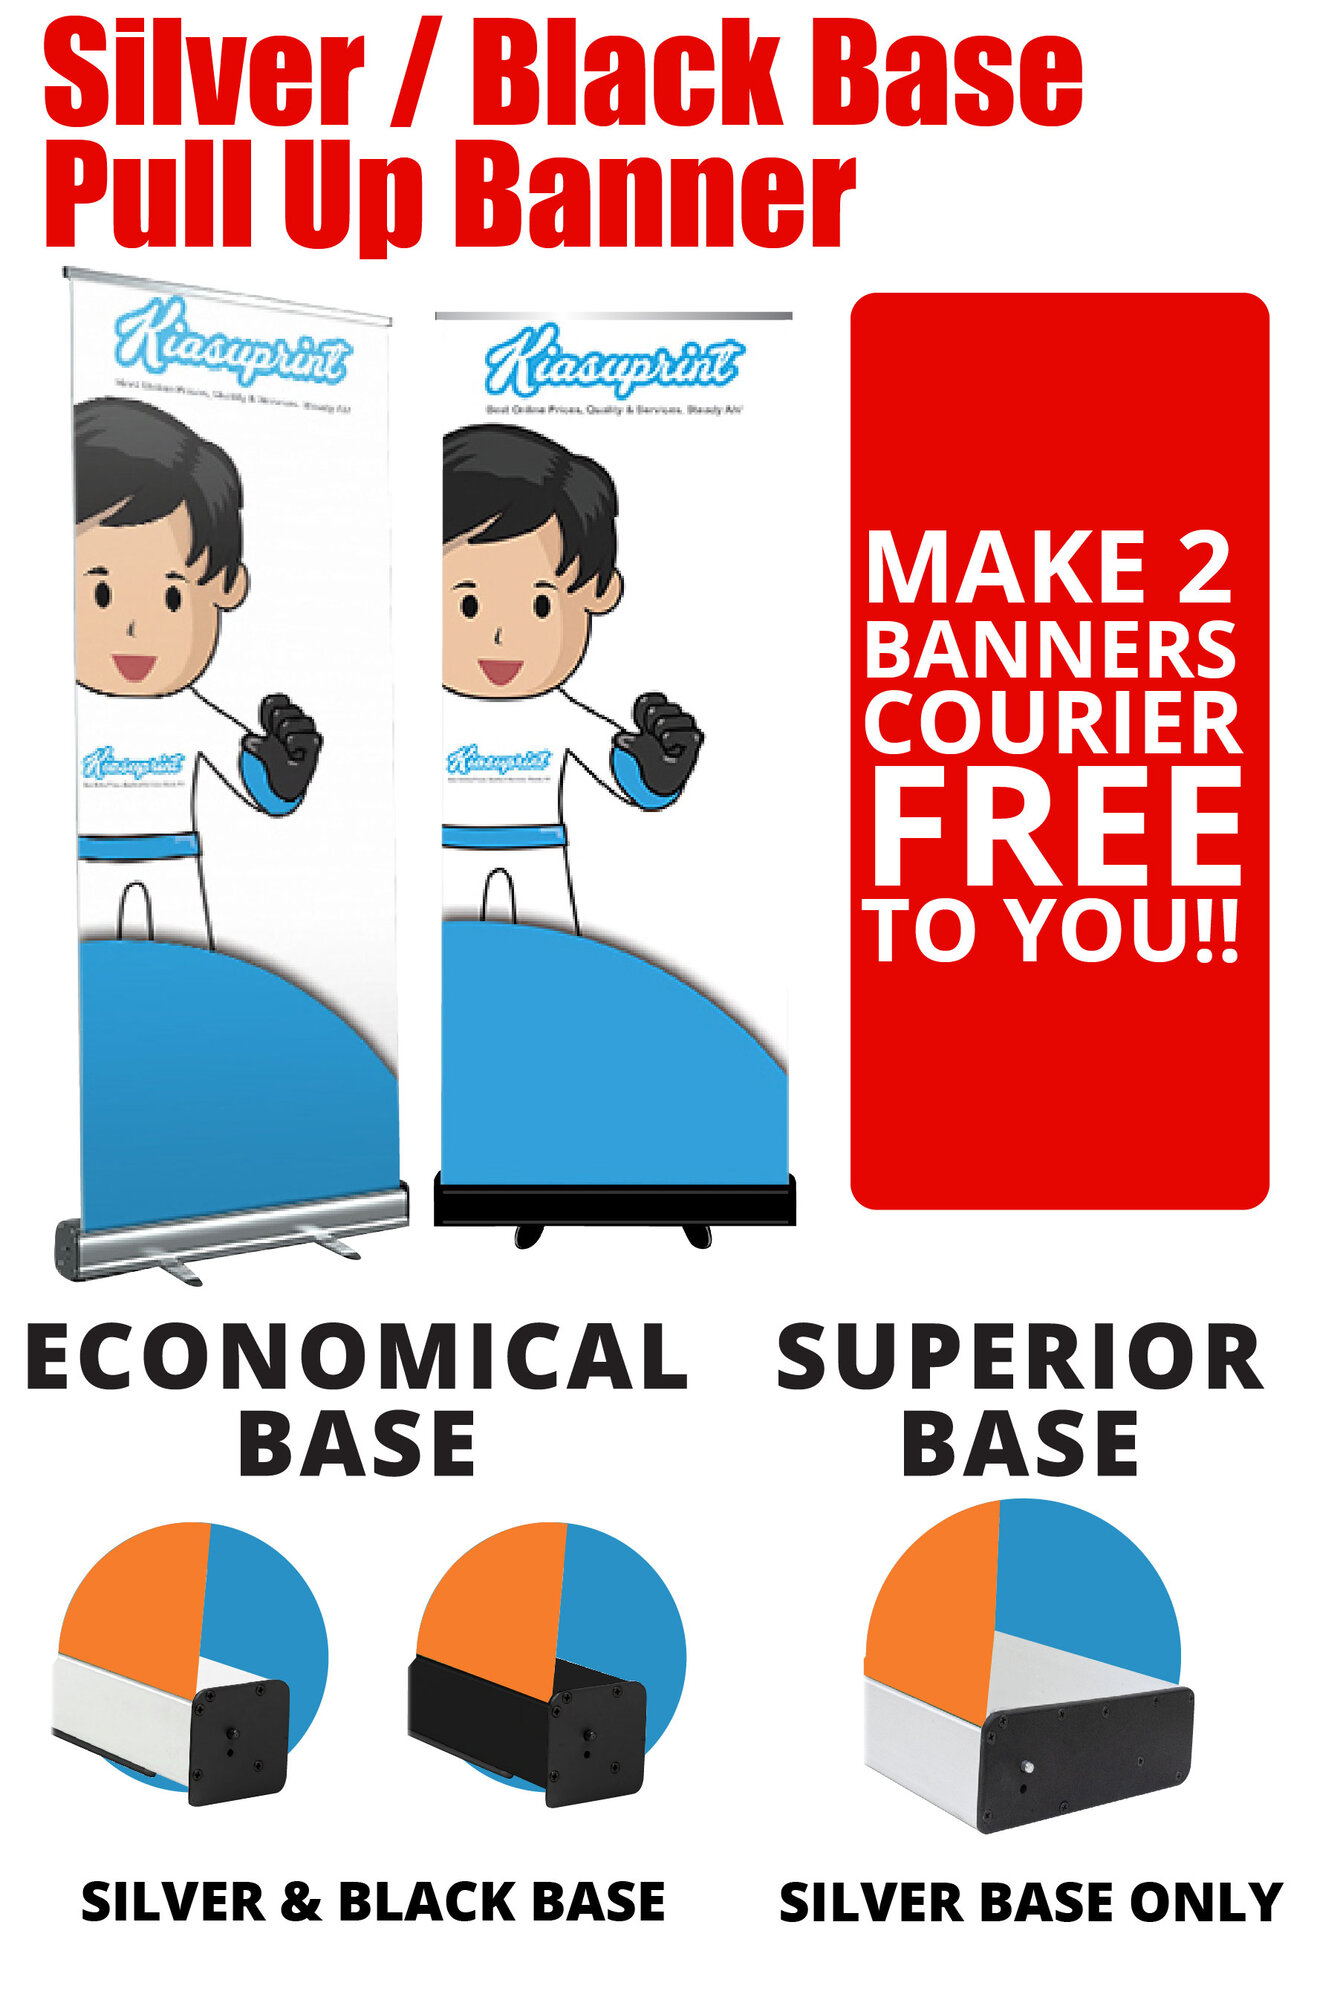 Pull Up / Roll Up Banner Stand